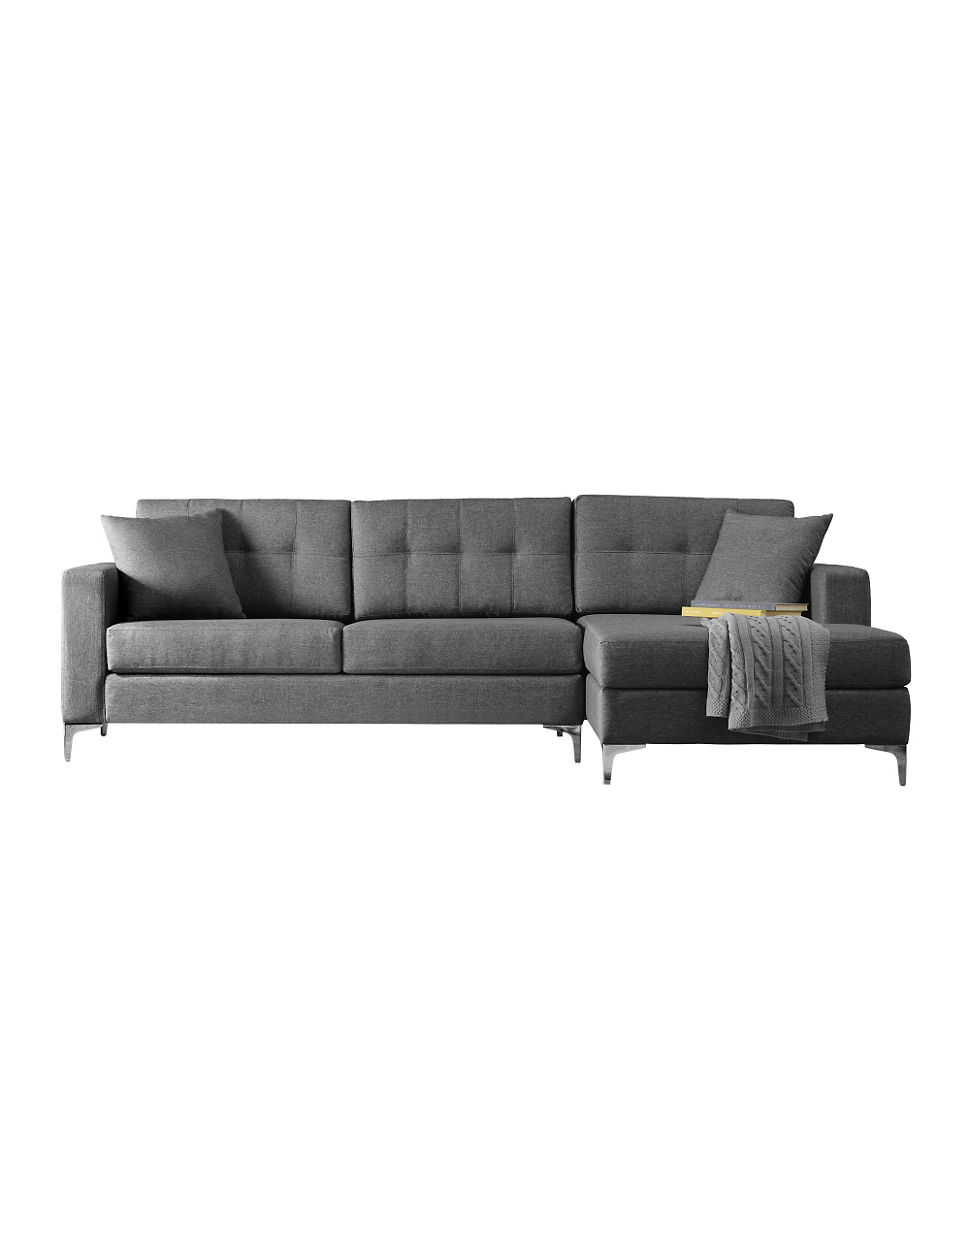 en w couches storage couch sectional seat ikea gray products friheten sleeper catalog chaise dark skiftebo with us